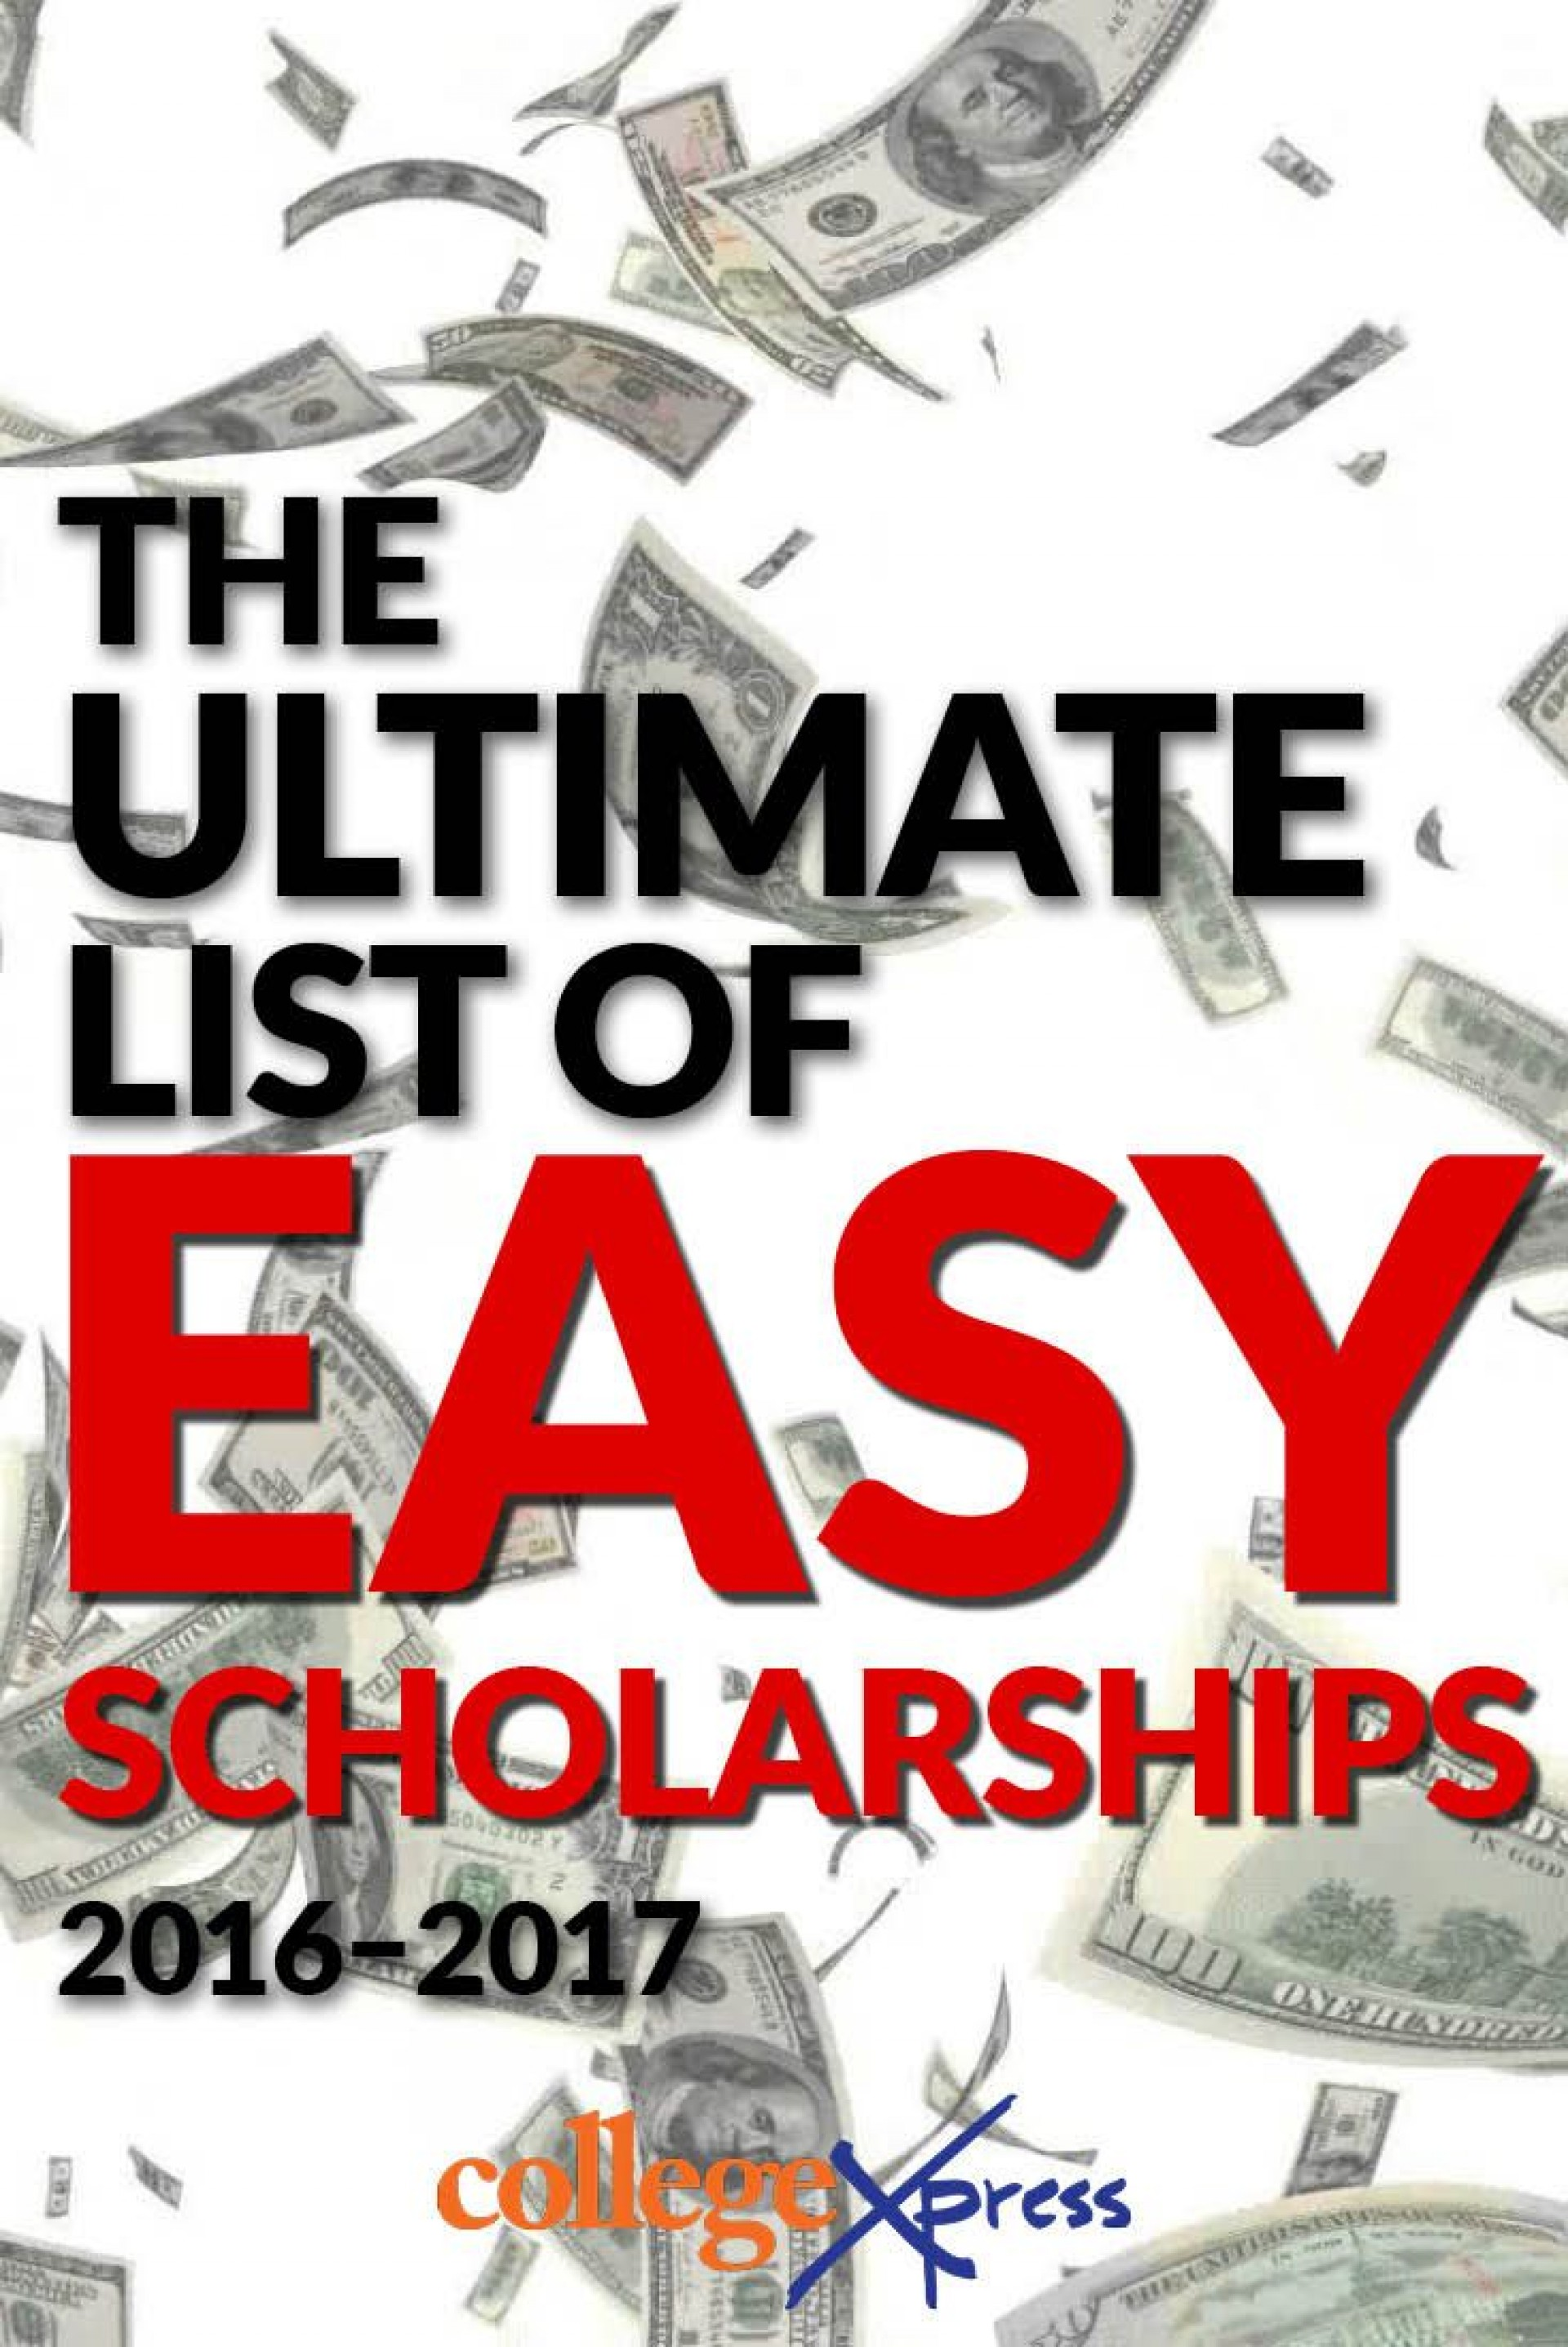 009 No Essay Scholarships For College Staggering 2017 Easy 1920